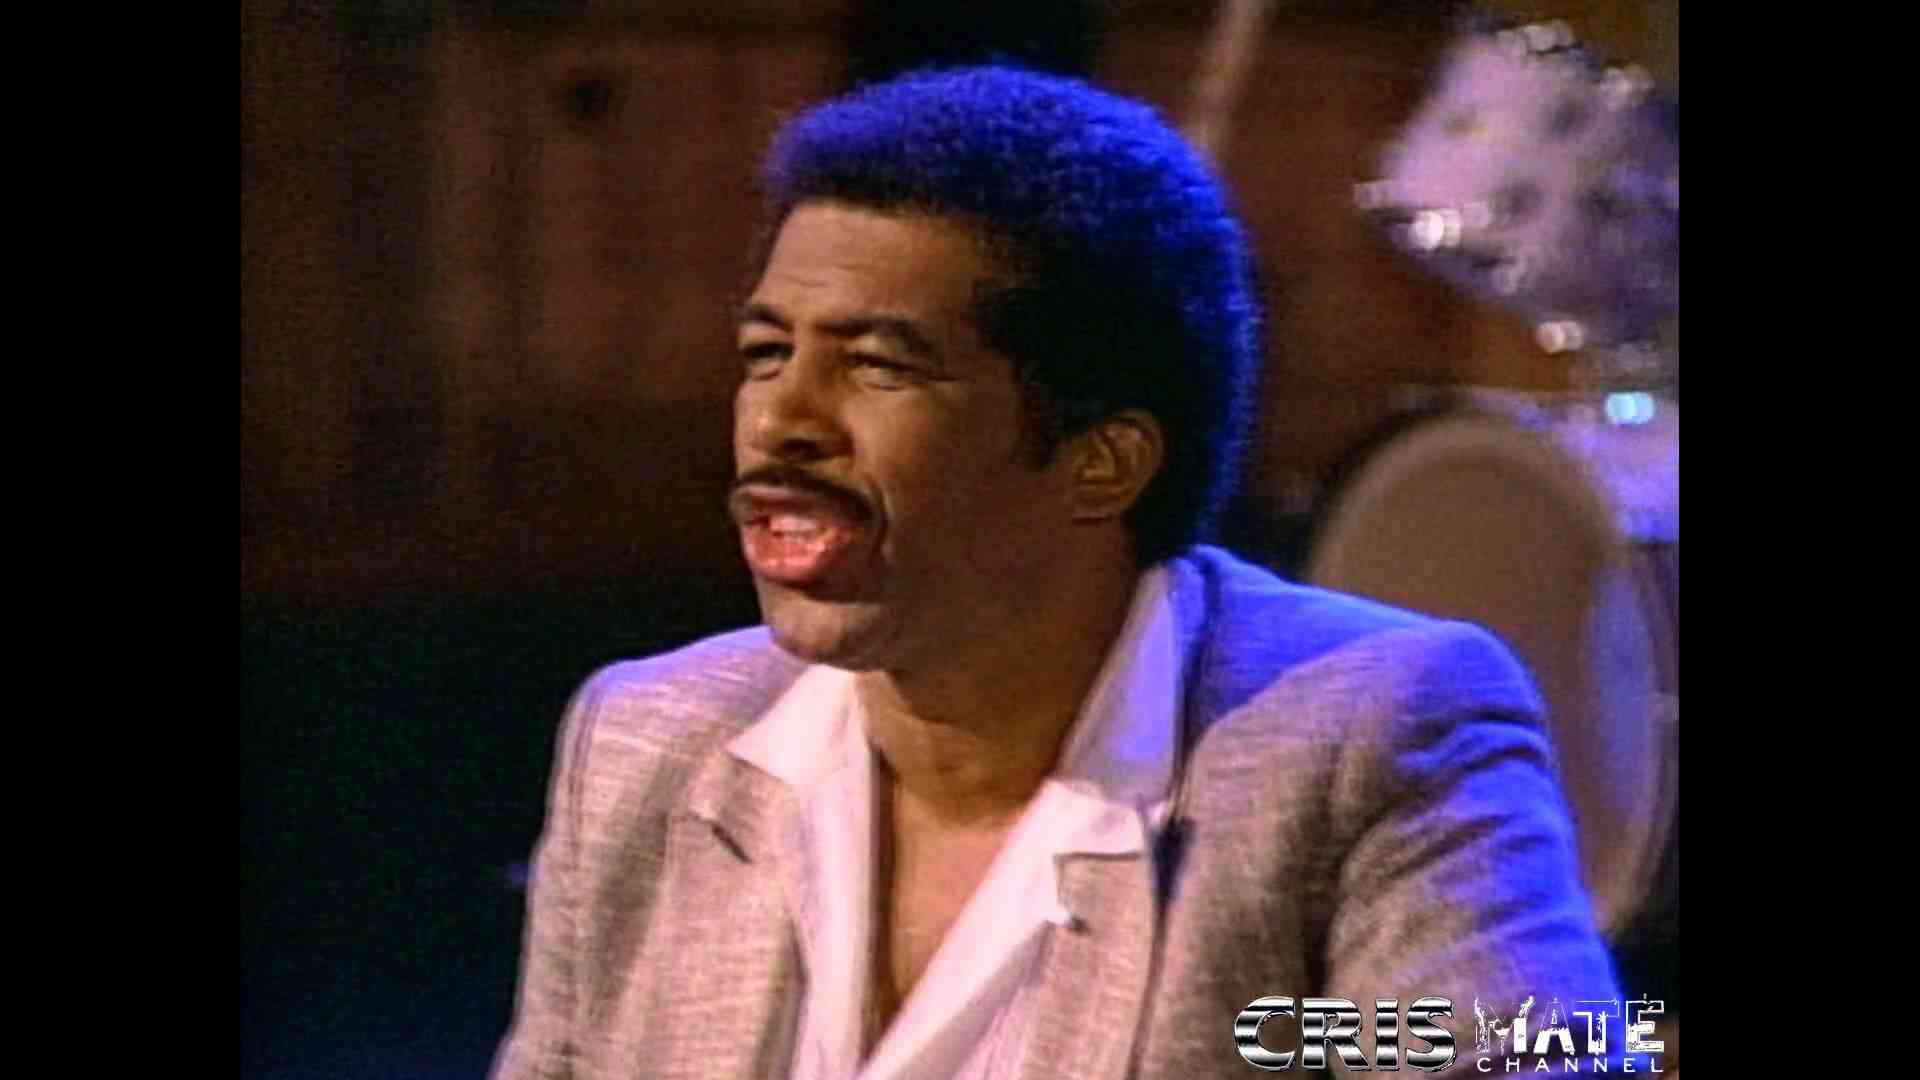 Ben E. King - Stand By Me (HQ Video Remastered In 1080p) - YouTube